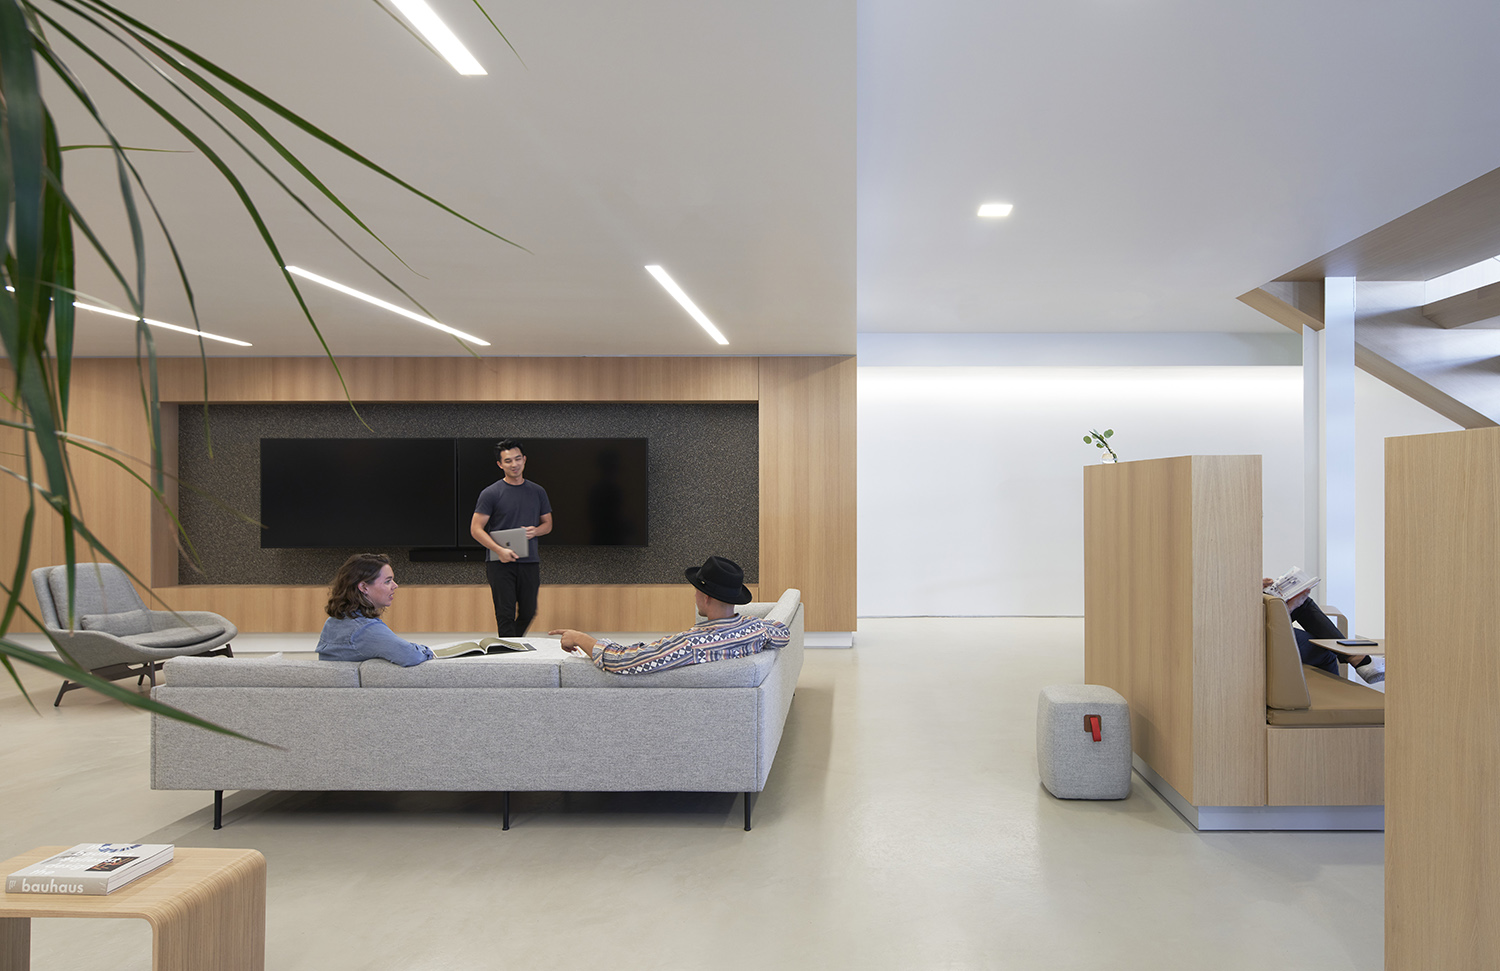 Open spaces with loose furniture encourage casual conversations. Kevin Scott